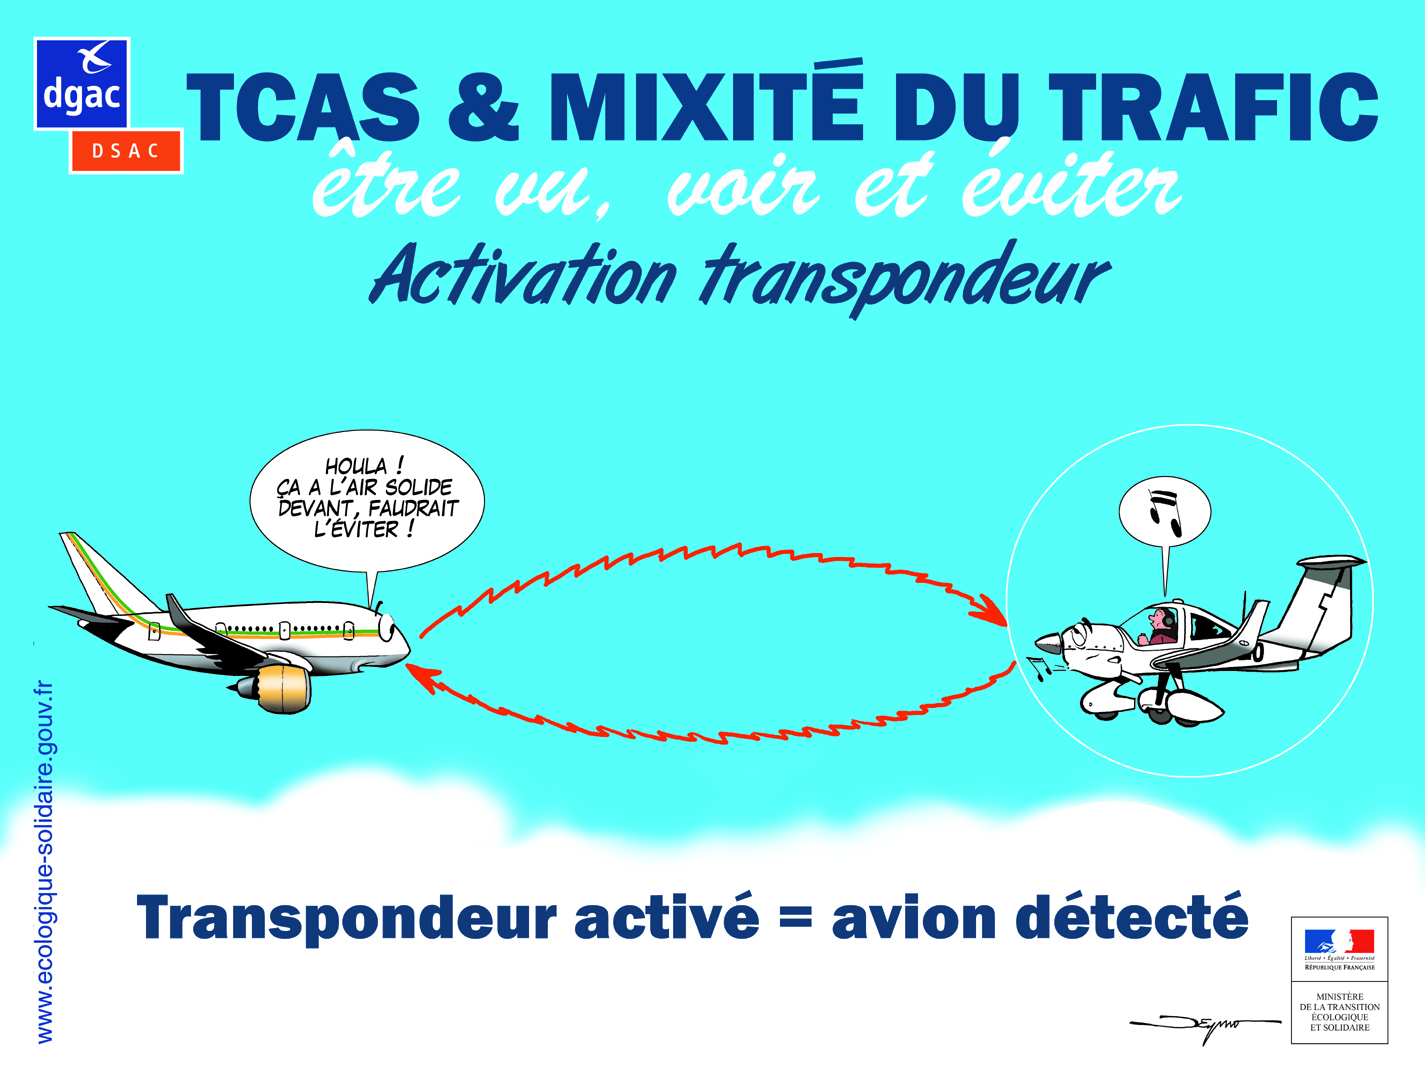 Activation transpondeur